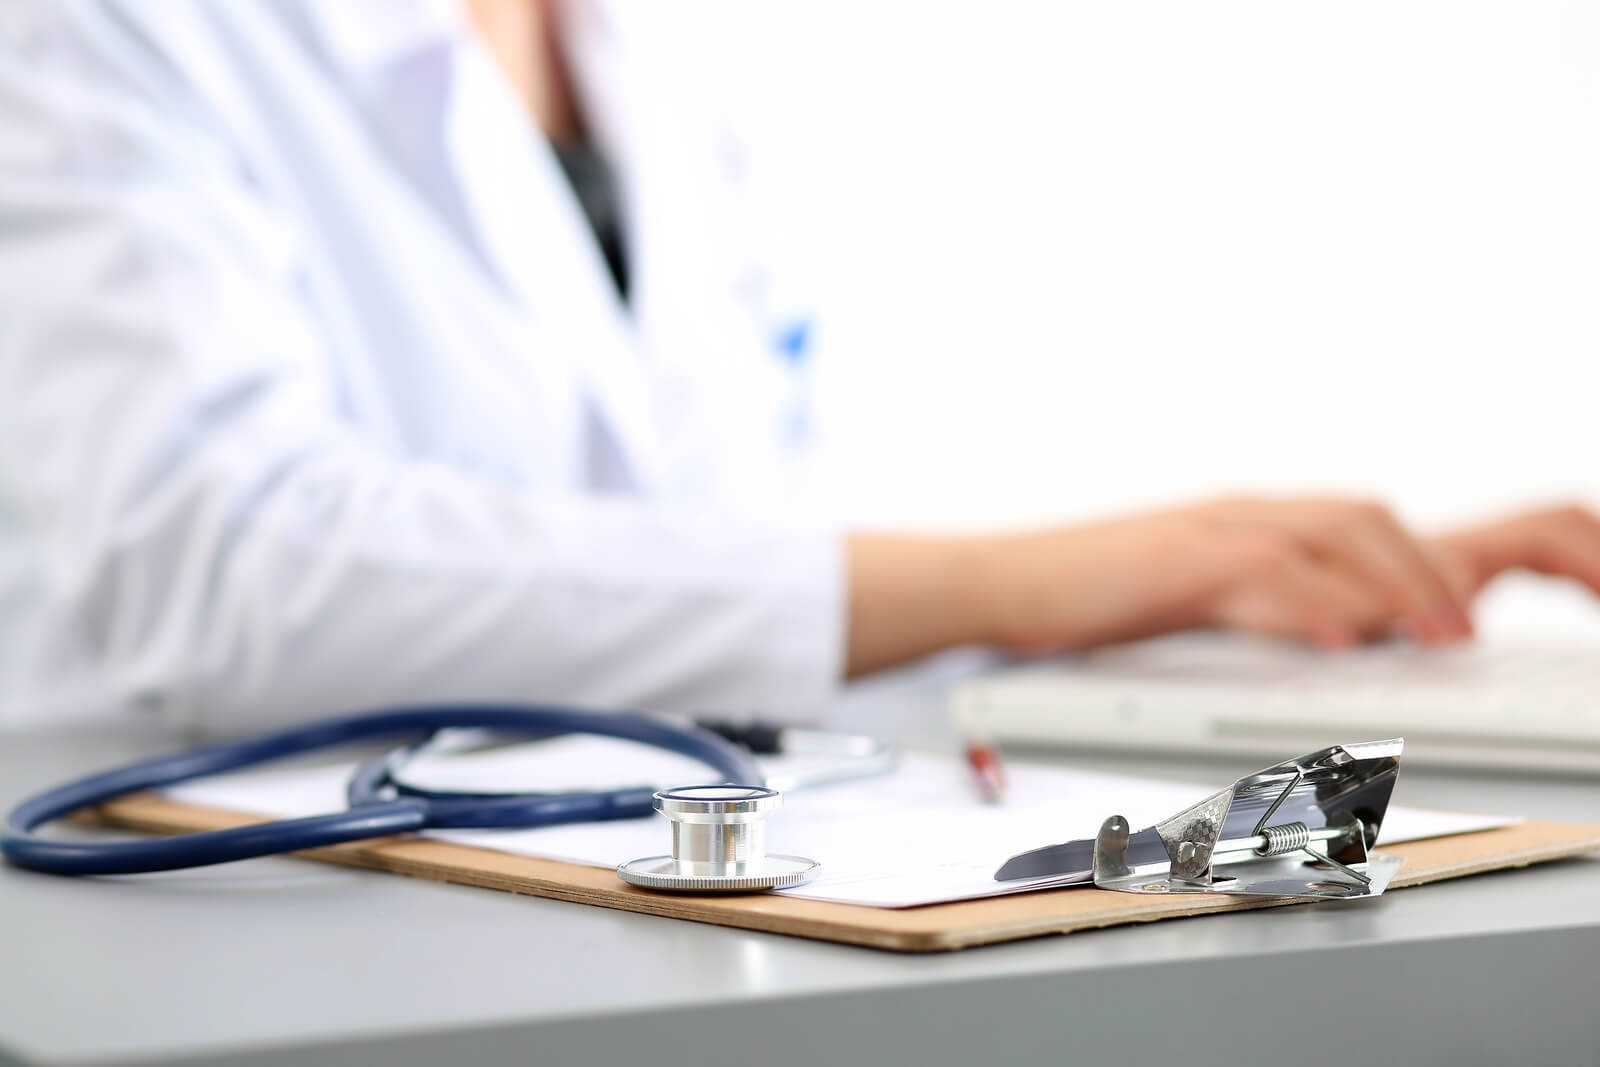 Follow Up With Your Primary Care Physician